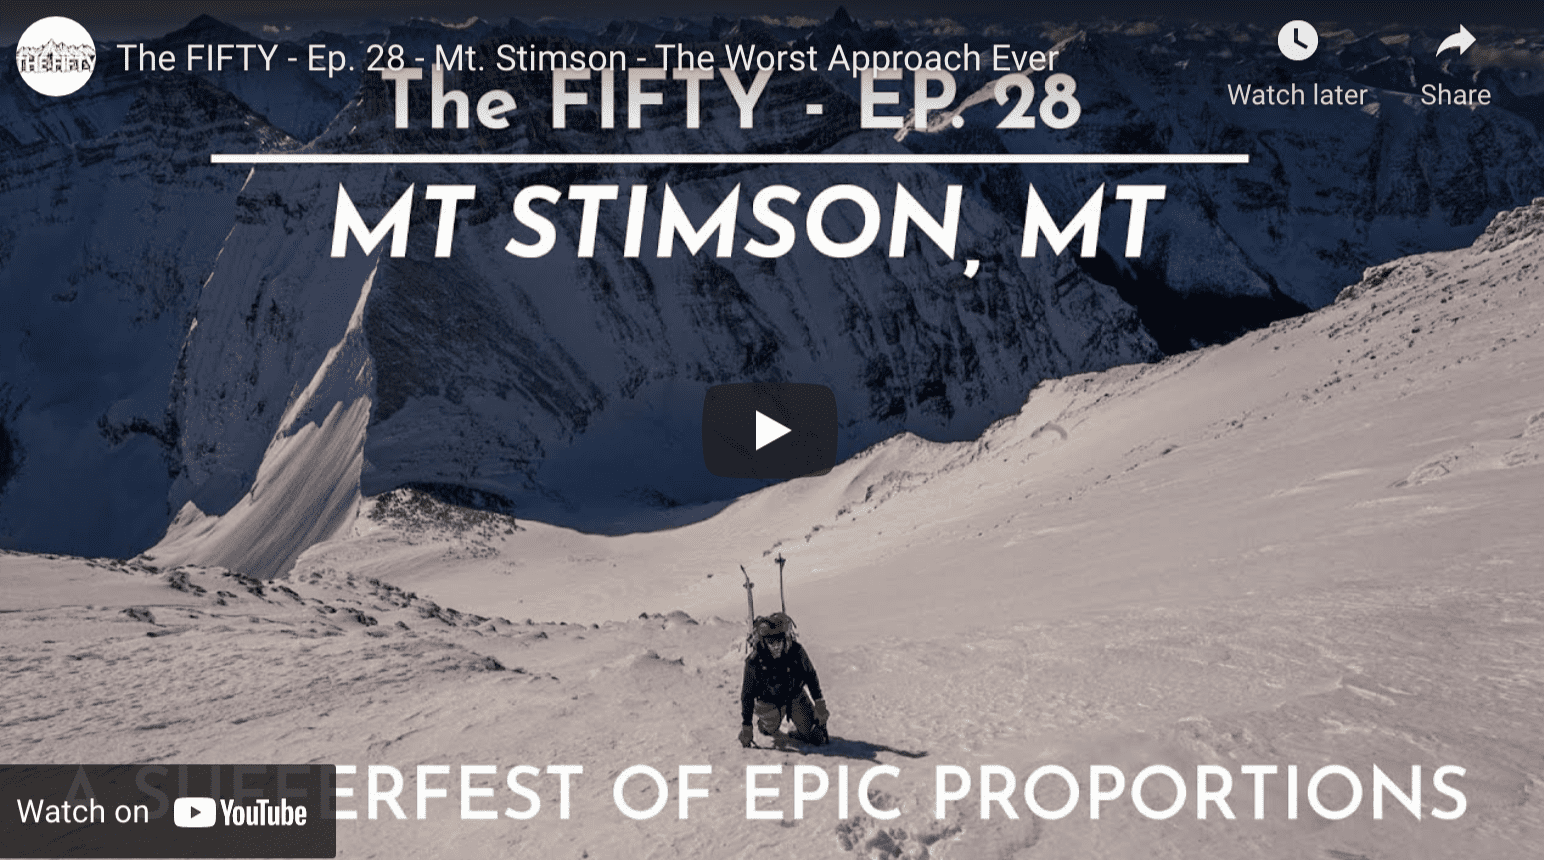 Cody Townsend's The Fifty Returns For Season Three. Episode 28 - Mt Stimson, Montana - The Worst Approach Ever